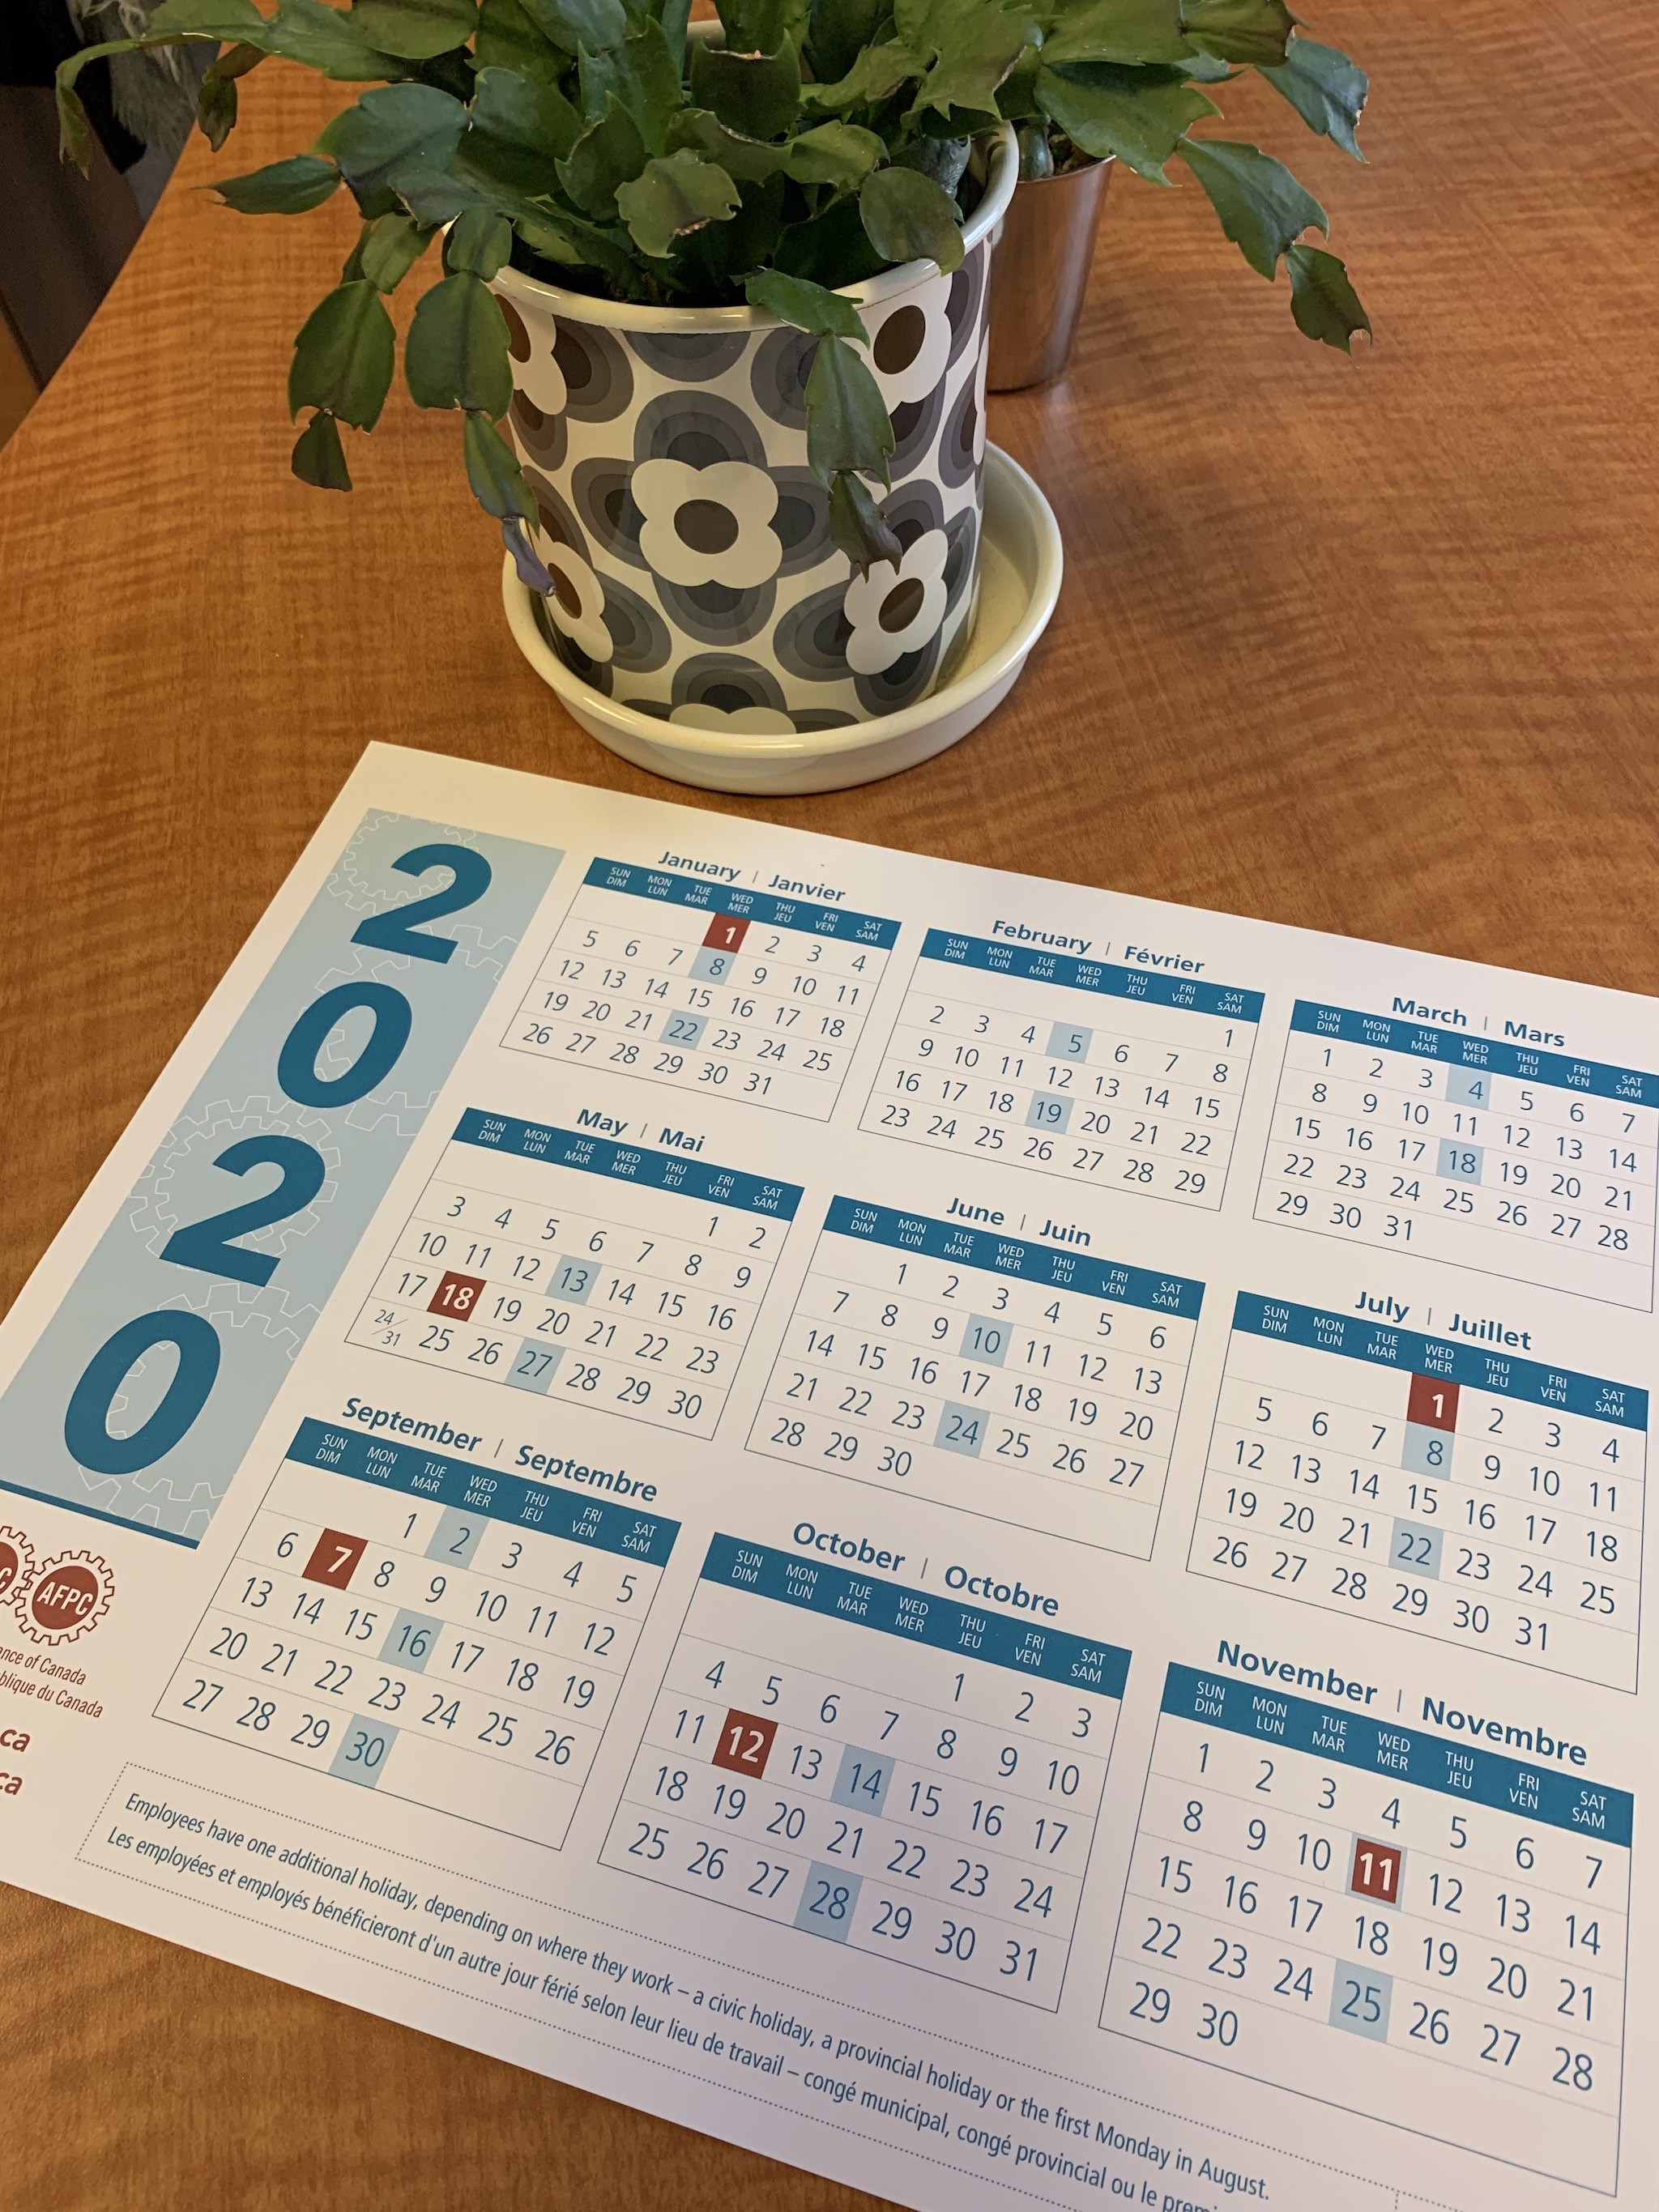 Psac Calendars | Public Service Alliance Of Canada Within University Of Phoenix Holiday Calendar 2020